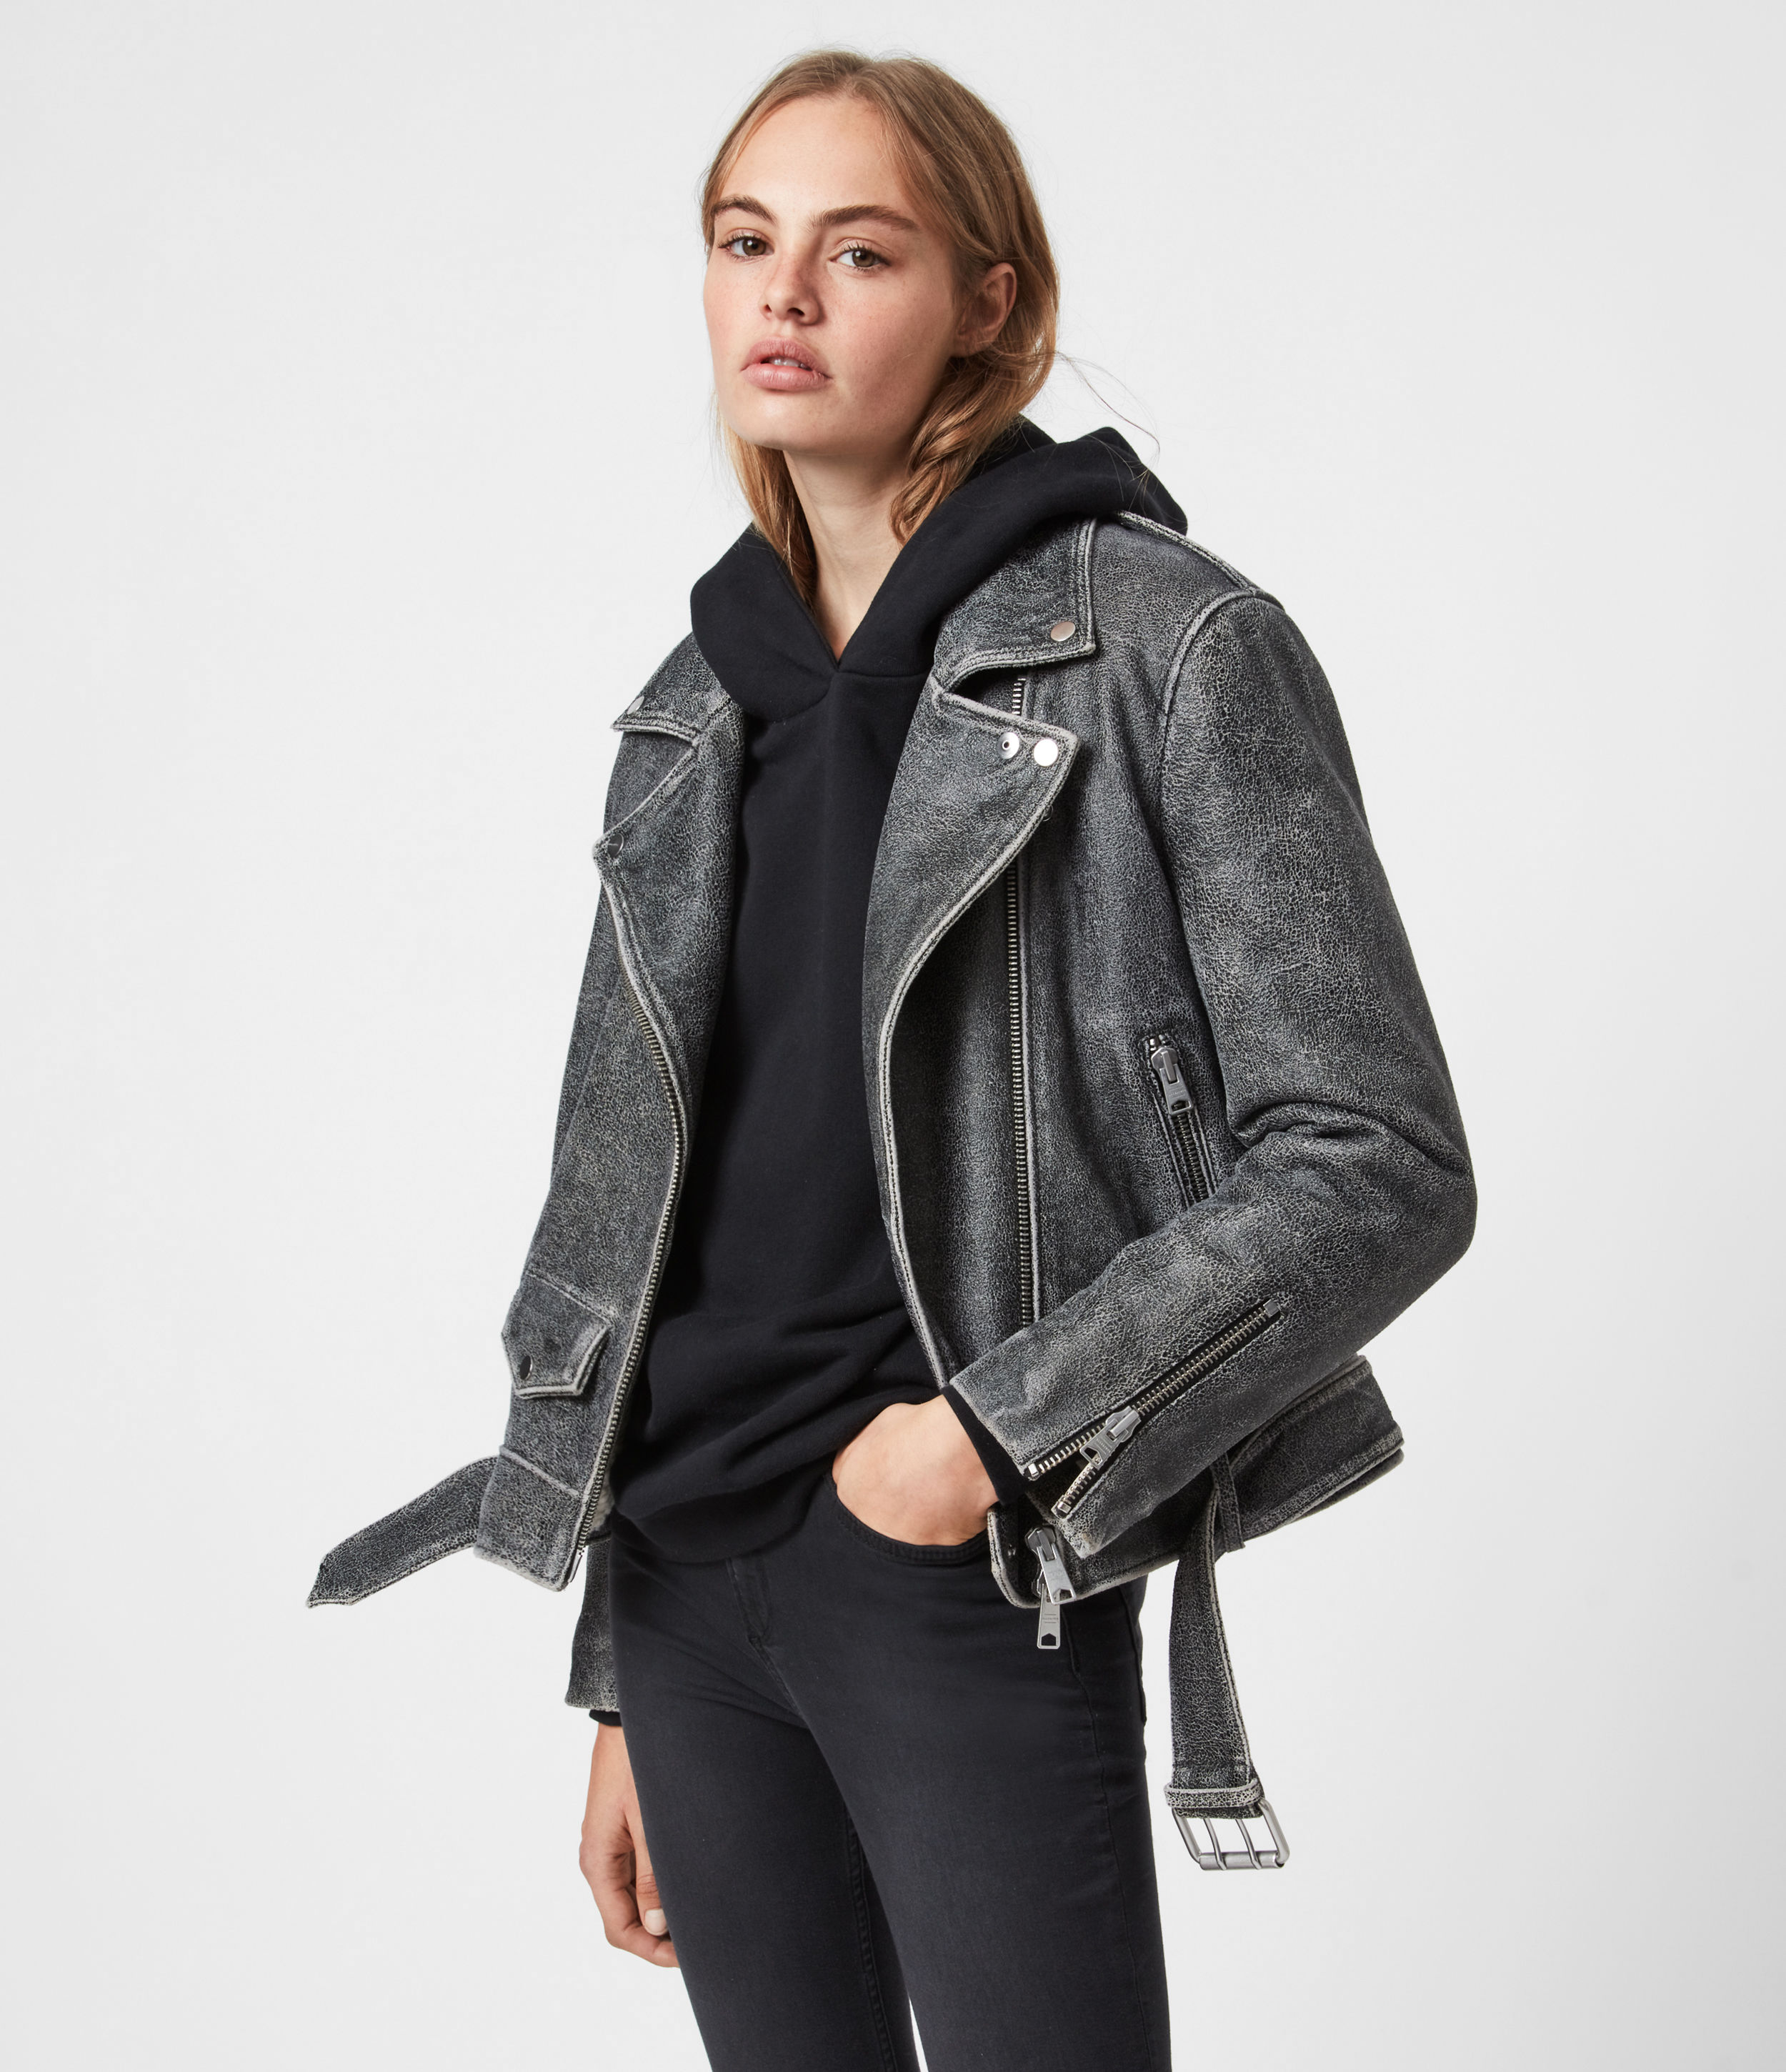 AllSaints Arashi Leather Biker Jacket